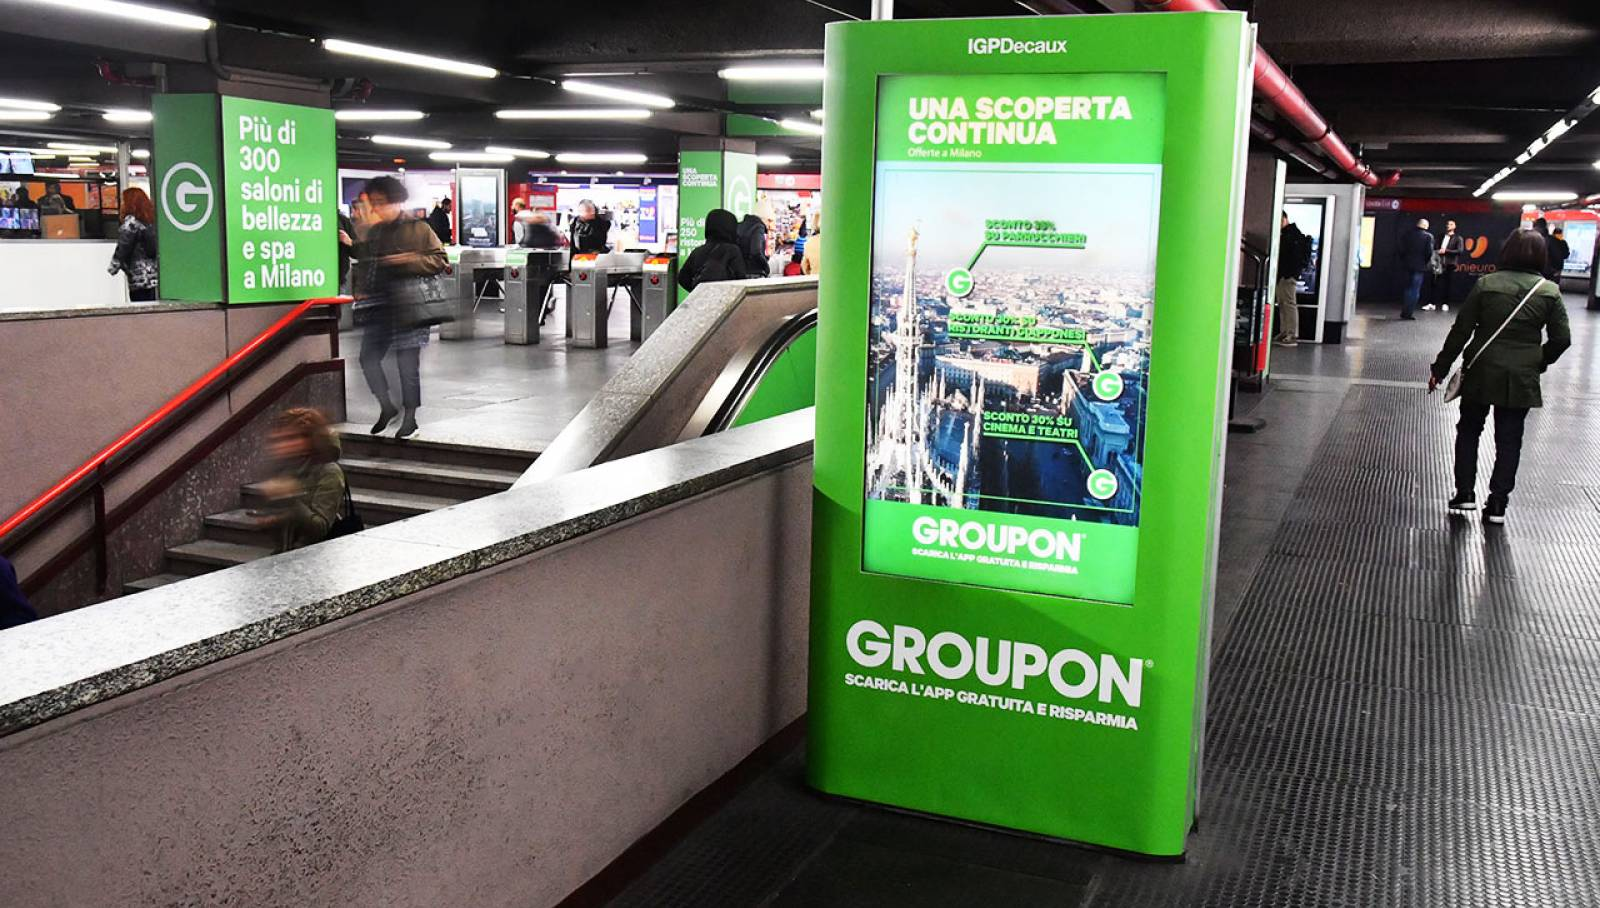 Underground advertising IGPDecaux in Milan Station Domination for Groupon